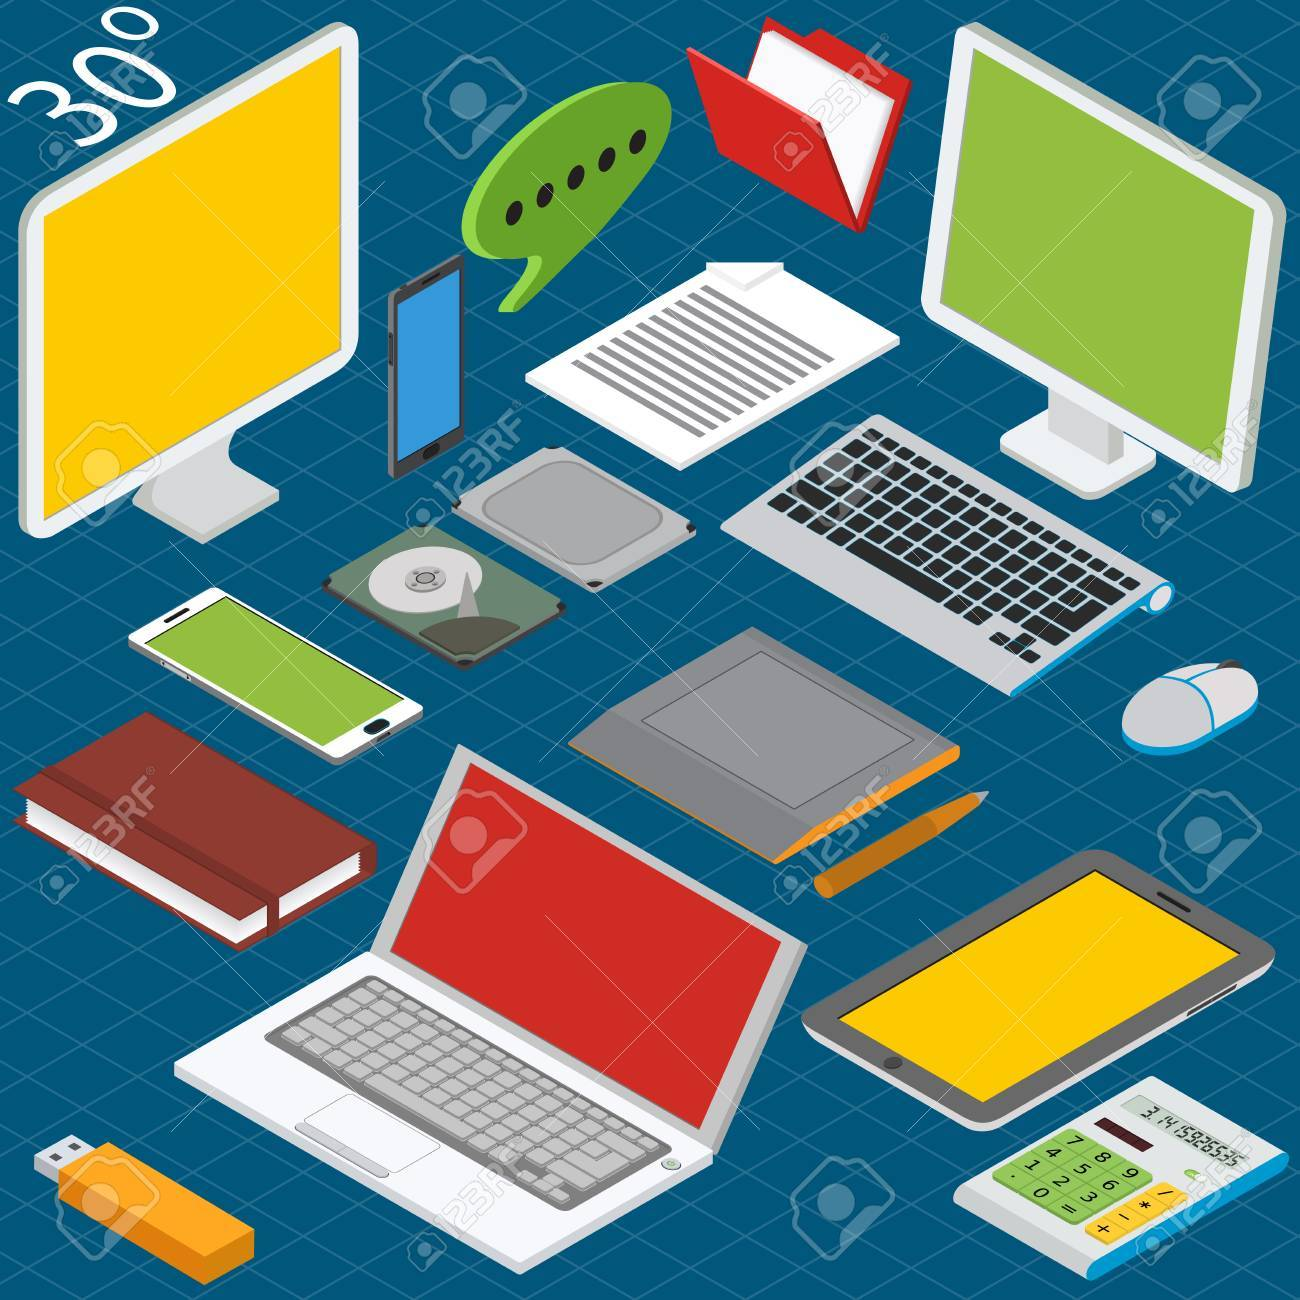 Isometric workplace with a laptop, desktop, smartphones, tablets, calculators, notebooks, hard drives and graphics tablet - 34278382